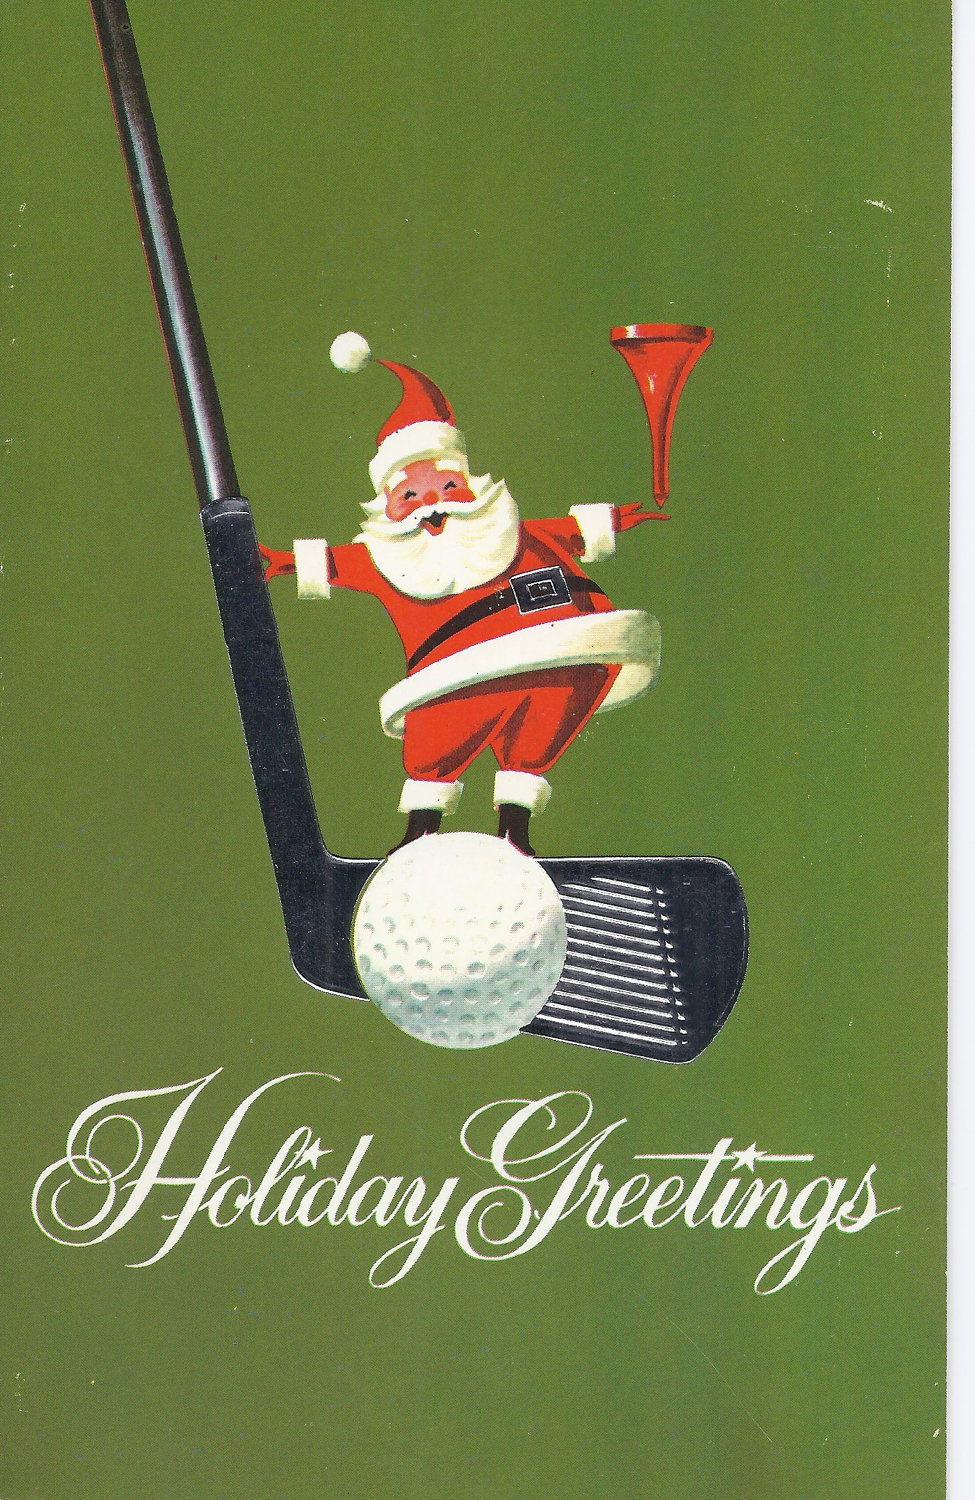 C-Vintage-Greeting-Card-Christmas-Santa-with-golf-club-via-Etsy-wallpaper-wp424333-1